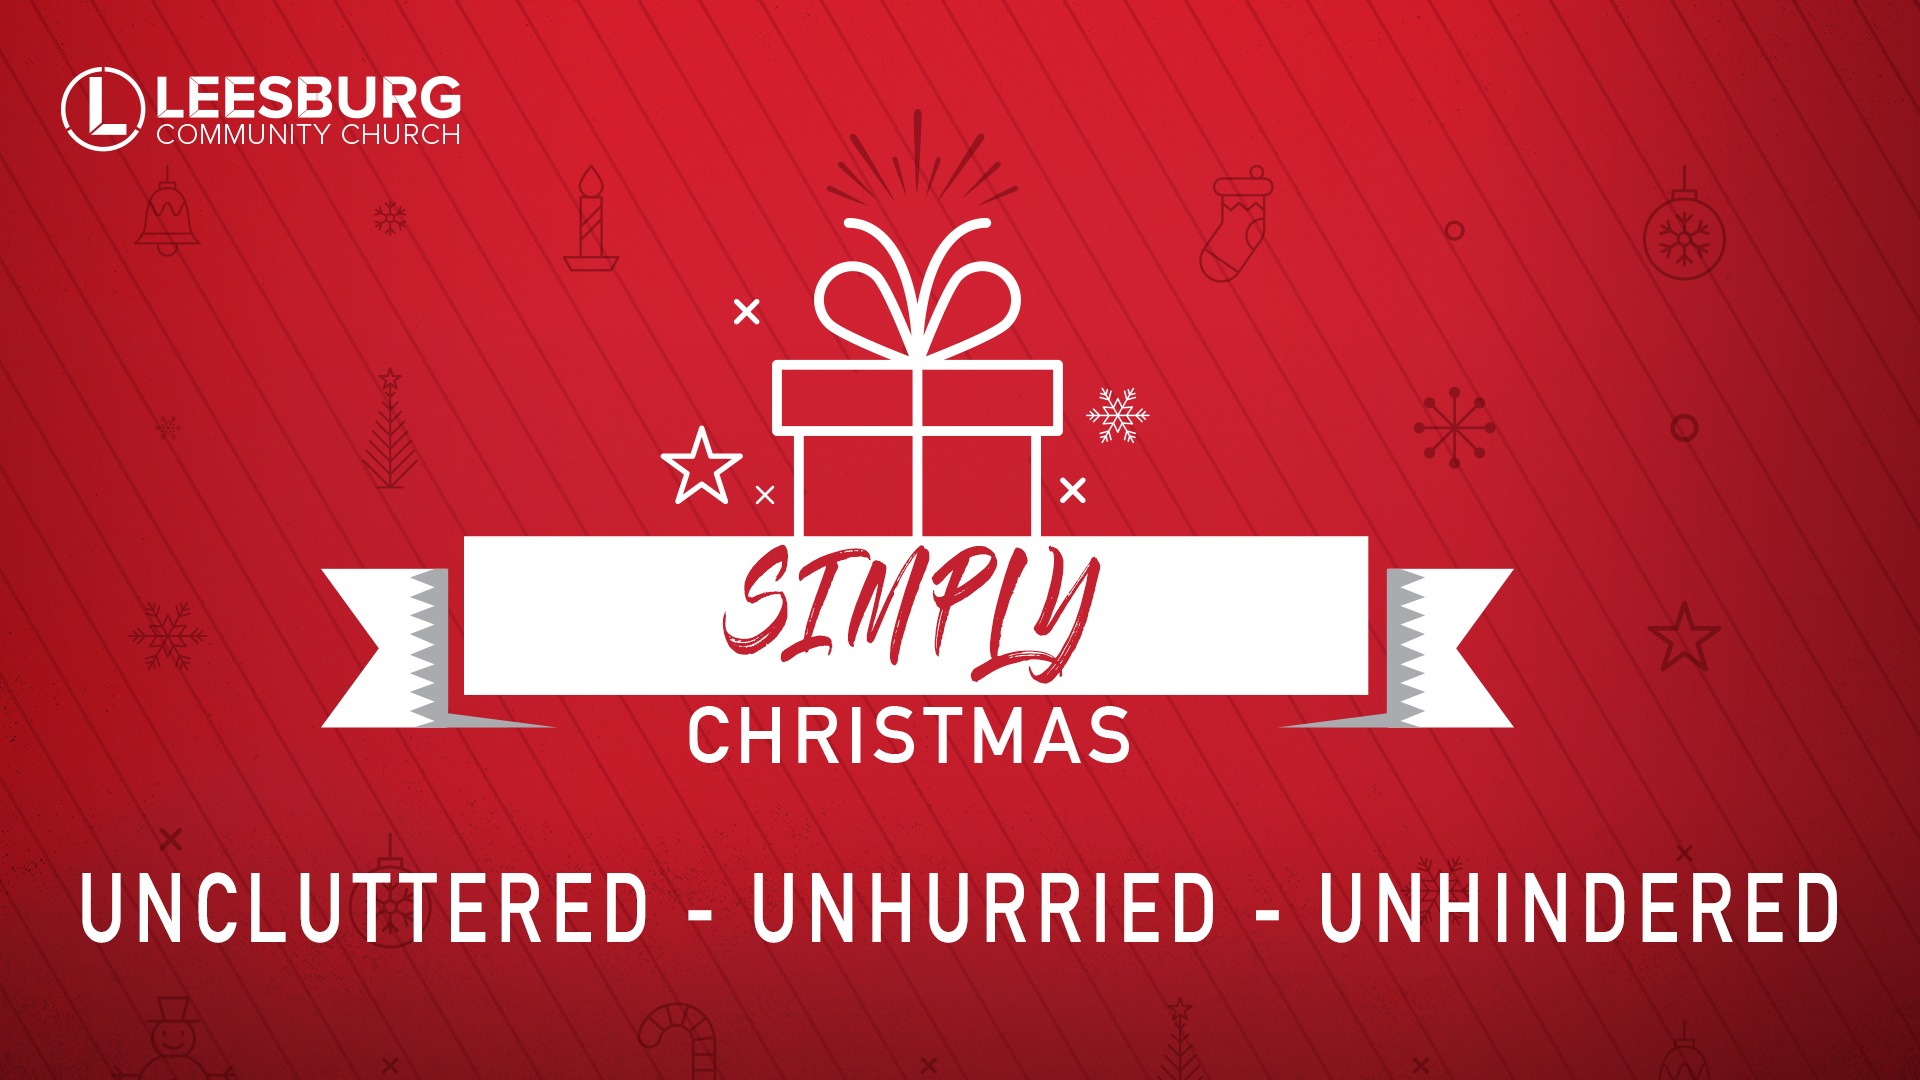 As we look toward Christmas we see how we are meant to view the brith of christ, Uncluttered, Unhurried, & Unhindered. Simply Christmas.